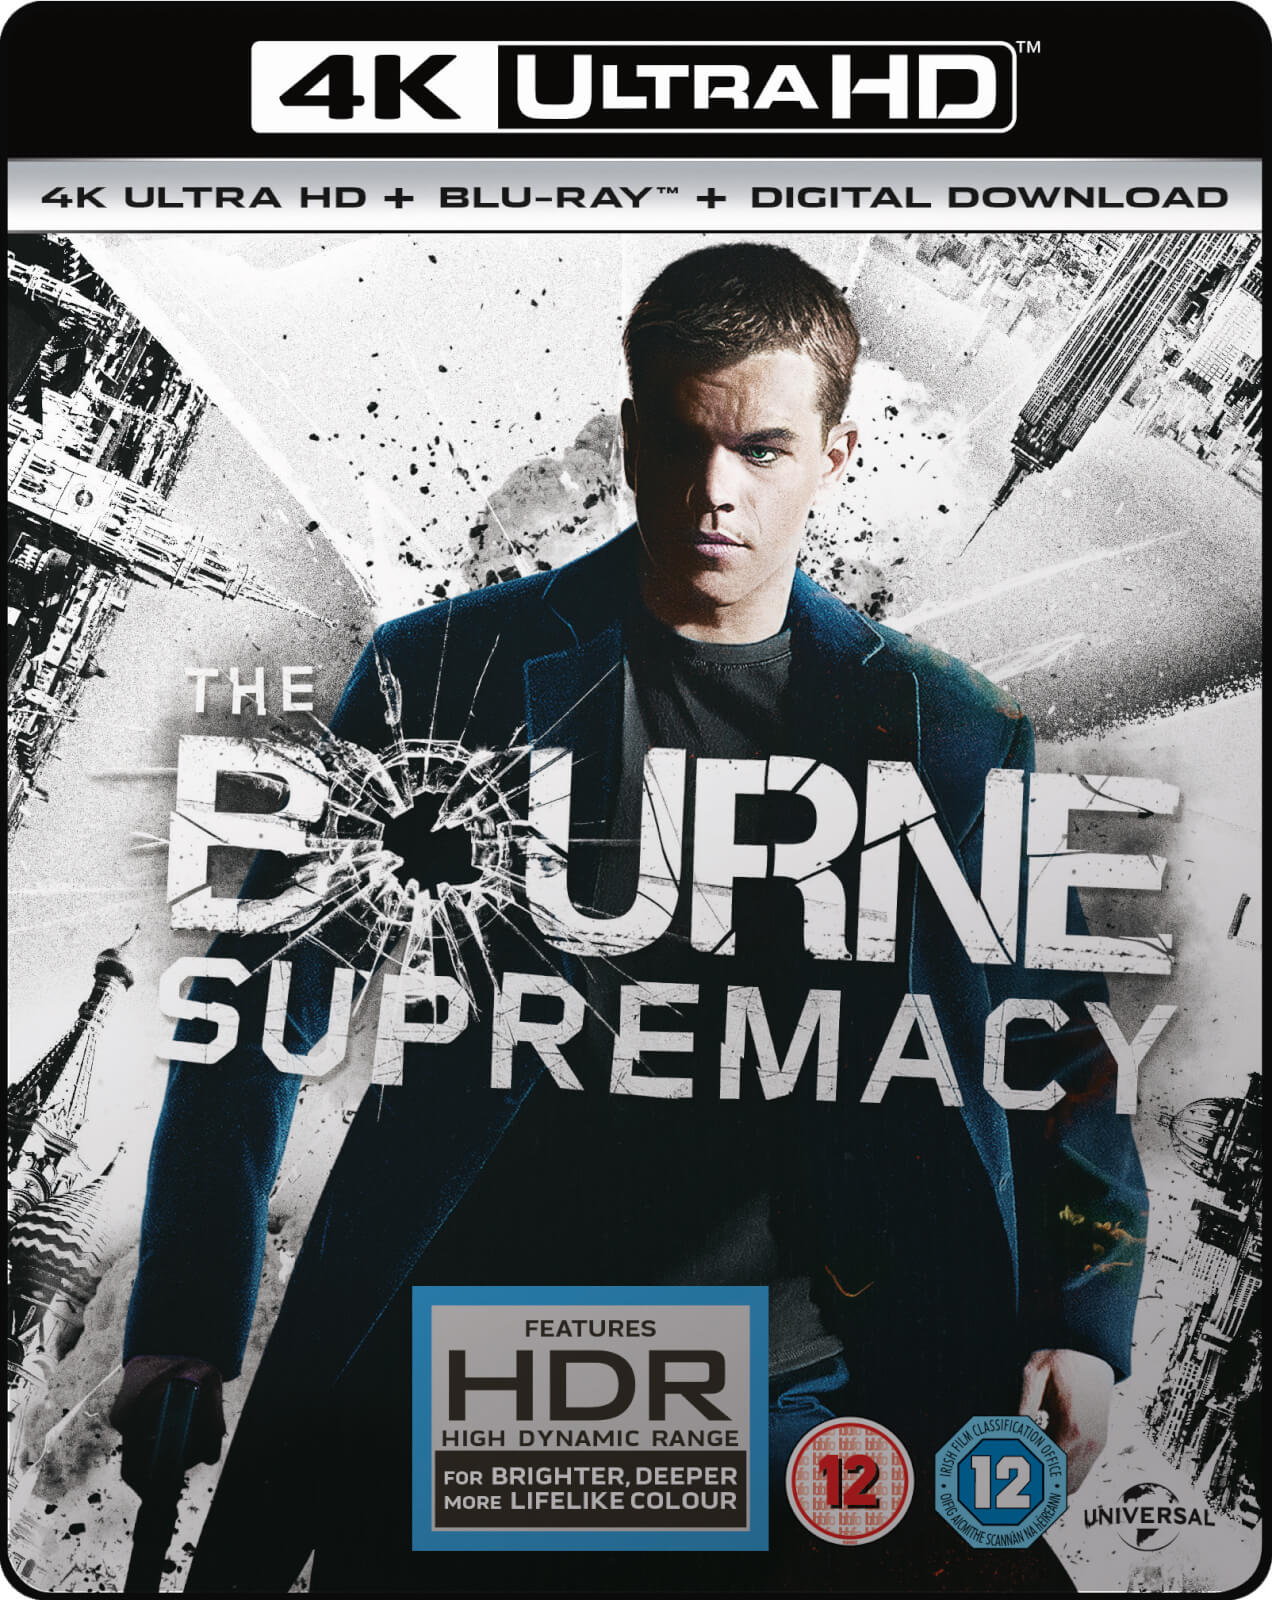 e57dbdce8 The Bourne Supremacy - 4K Ultra HD